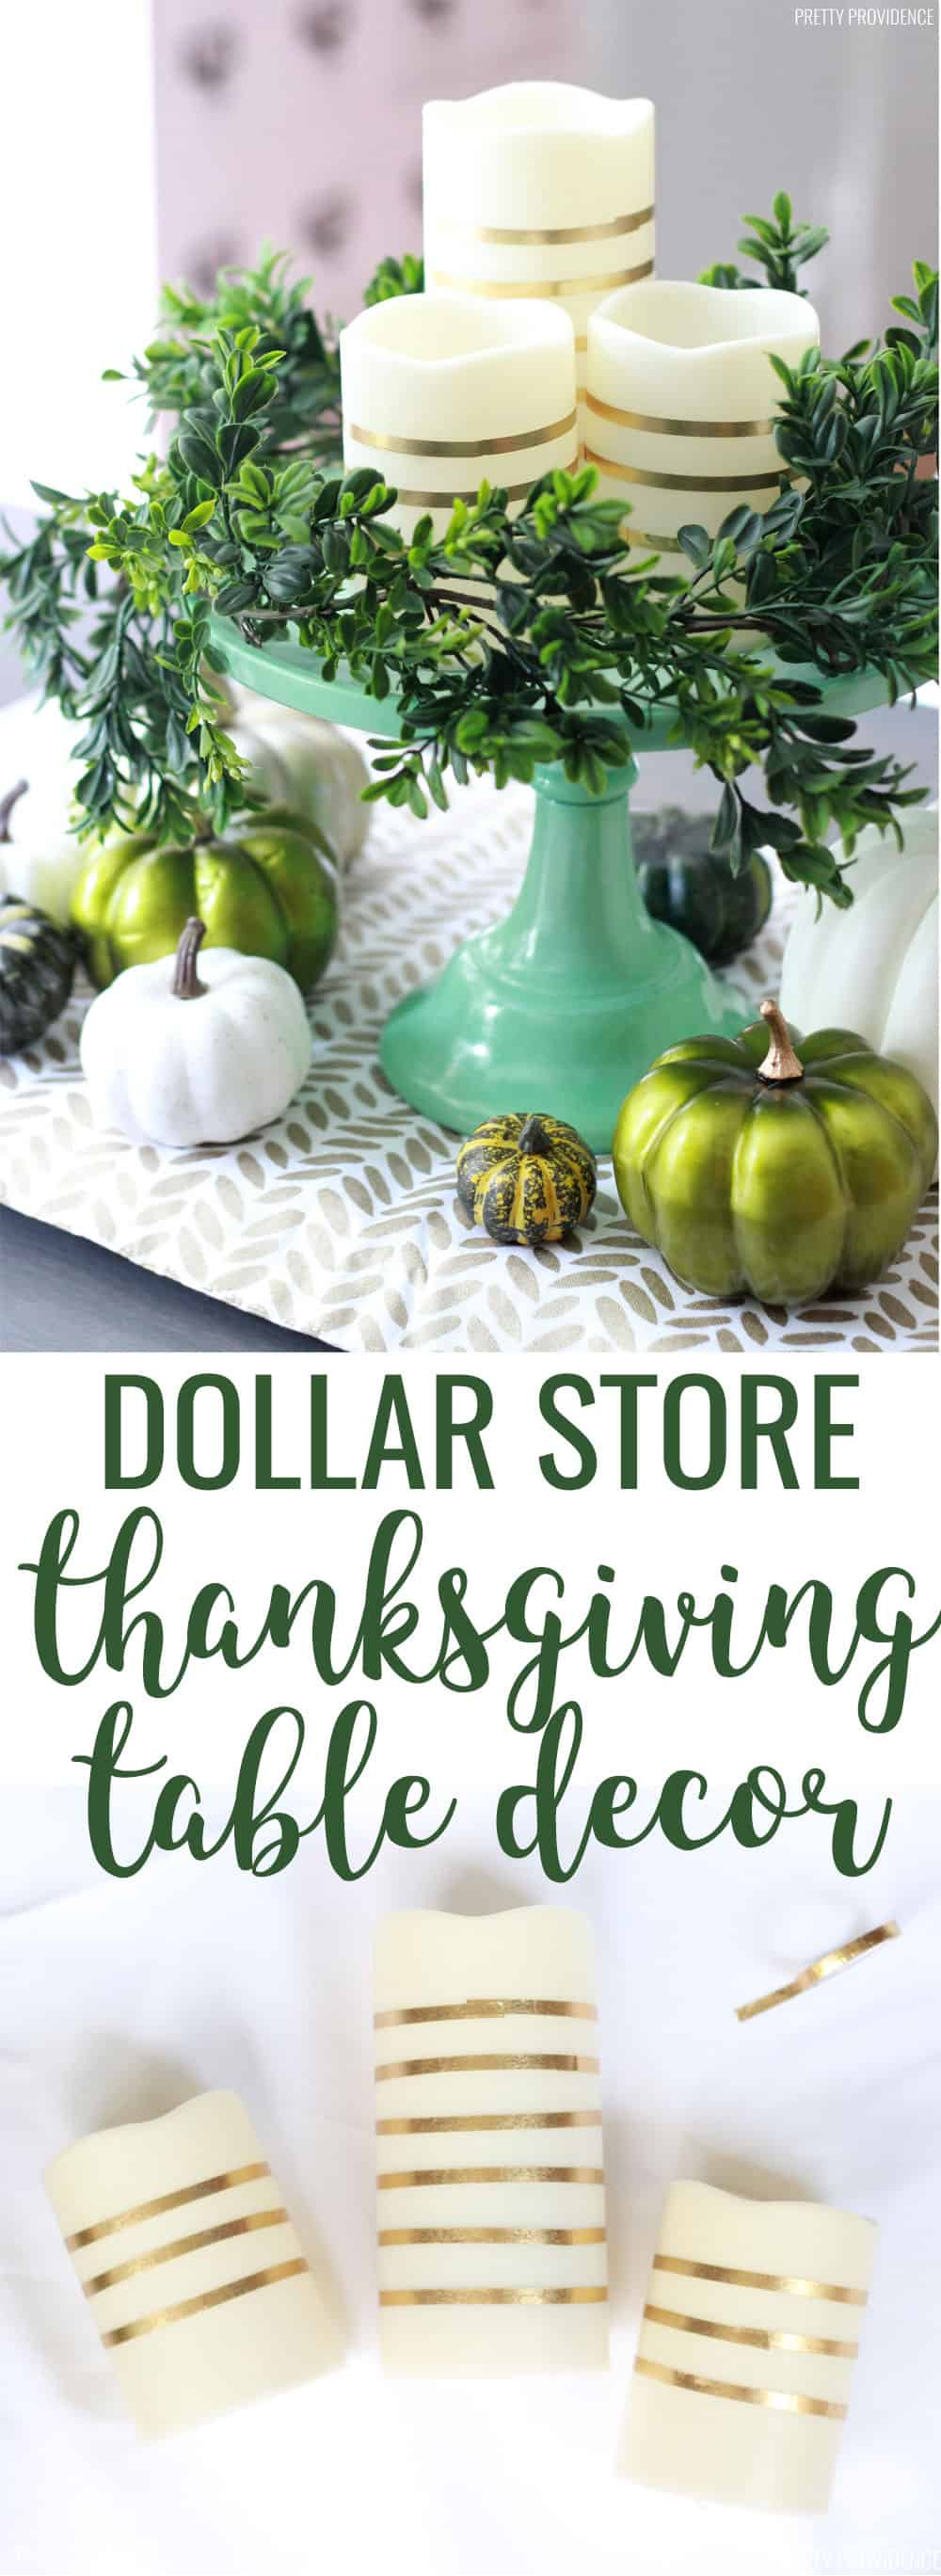 Simple Thanksgiving table decor that is elegant and beautiful, and mostly from dollar tree! #dollartree #thanksgiving #thanksgivingtabledecor #elegant #thanksgivingdecorations #centerpiece #tableideas #thanksgivingdecor #onabudget #easy #modern #cakestand